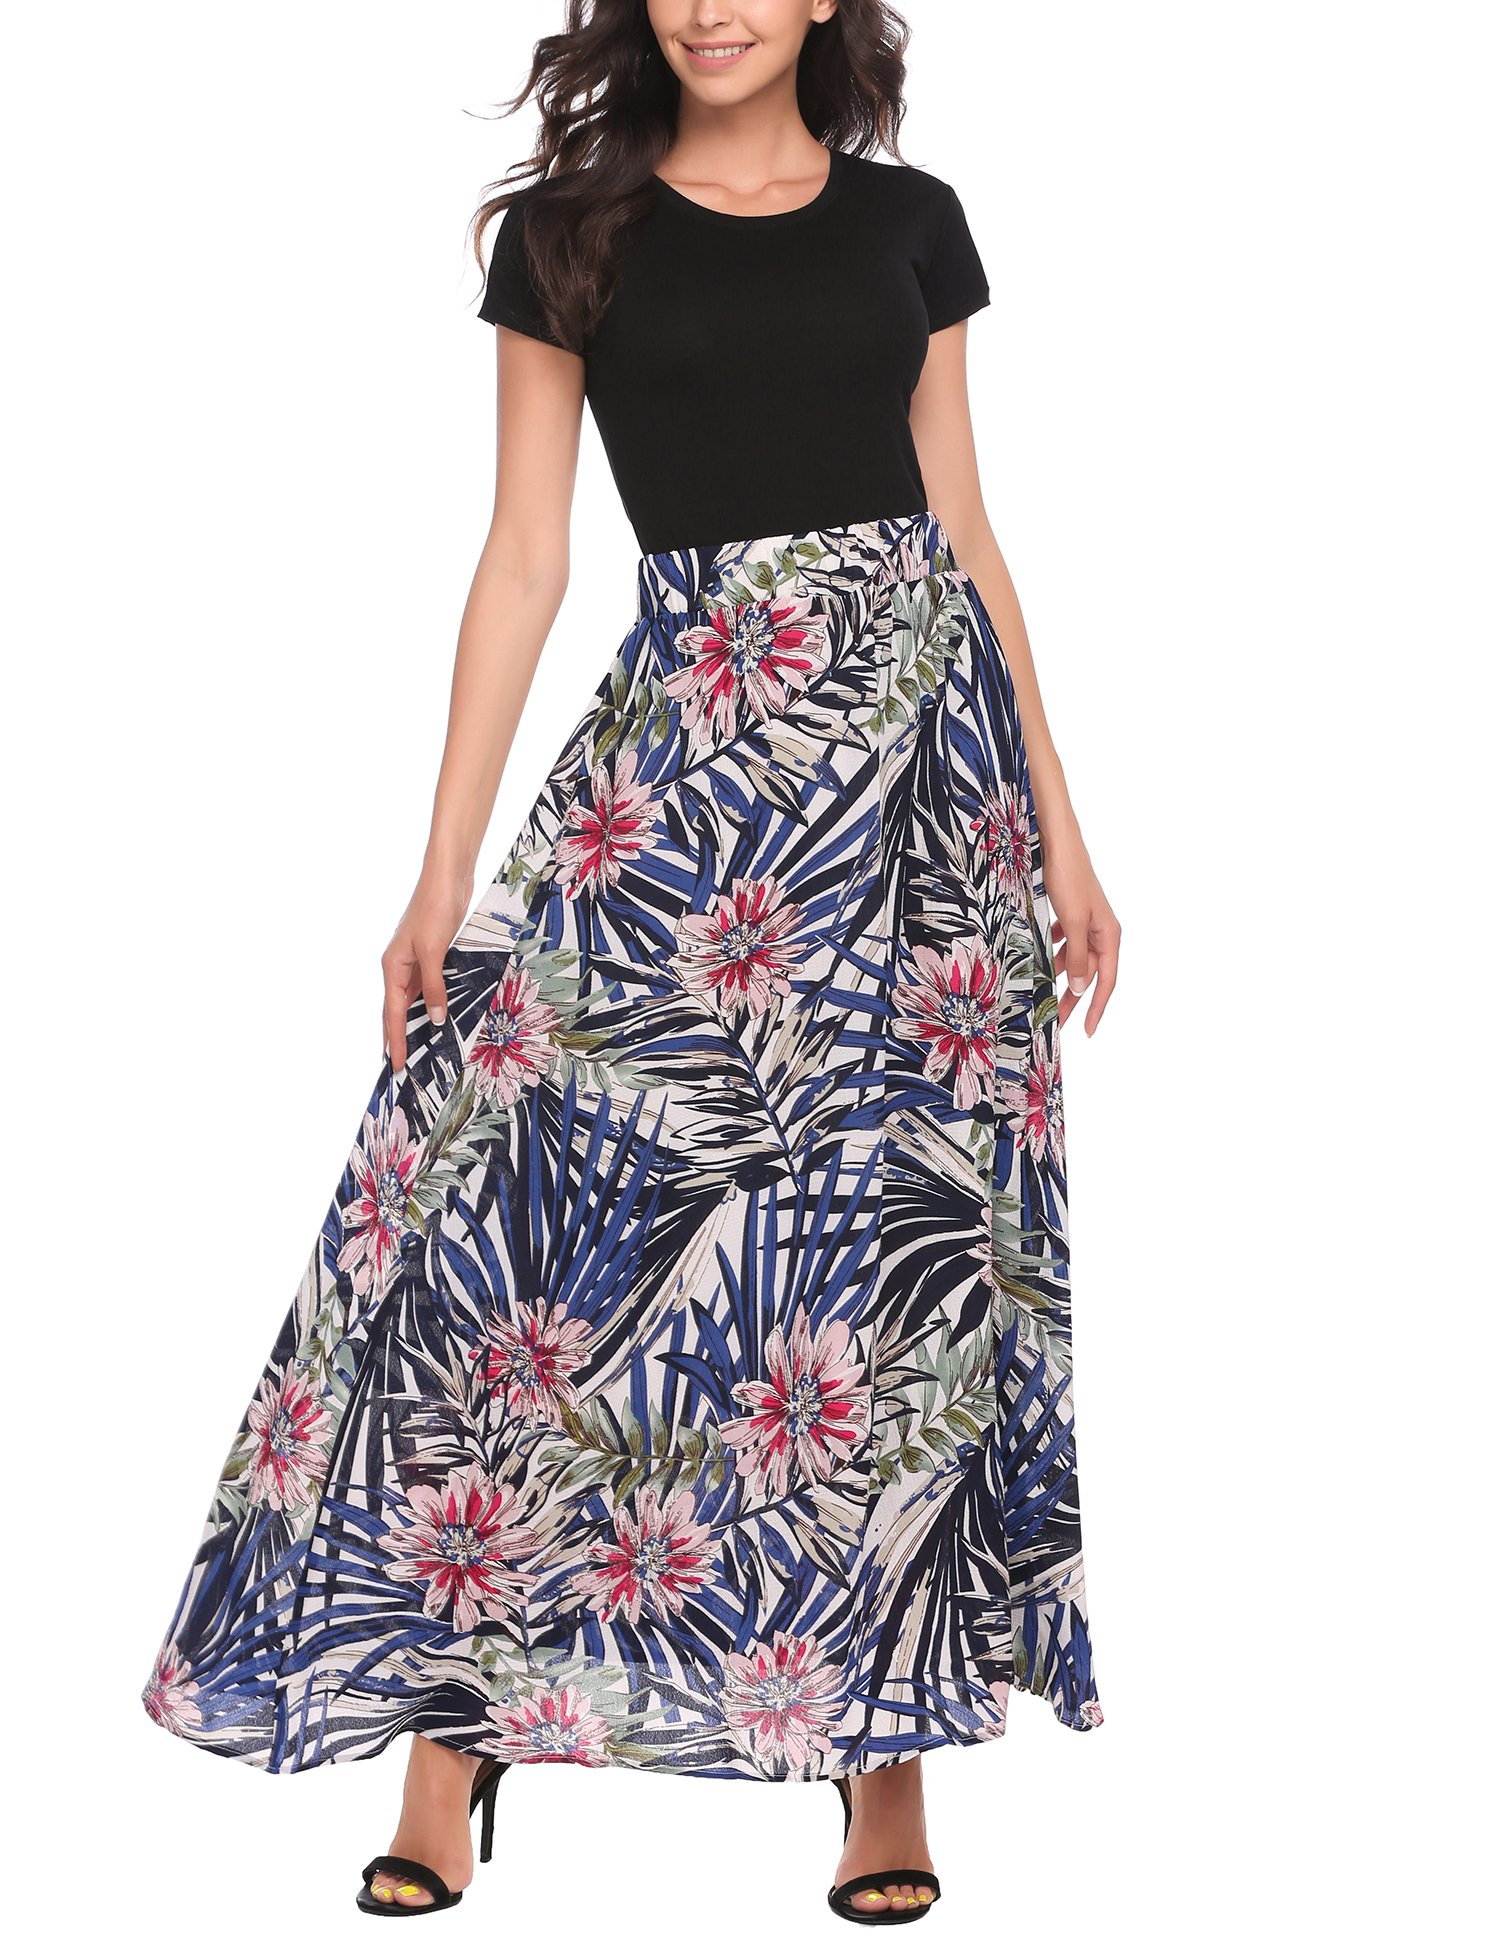 Zeagoo Women African Boho Floral Print High Waist Beach Party Bohemia Long Maxi Skirt by Zeagoo (Image #3)